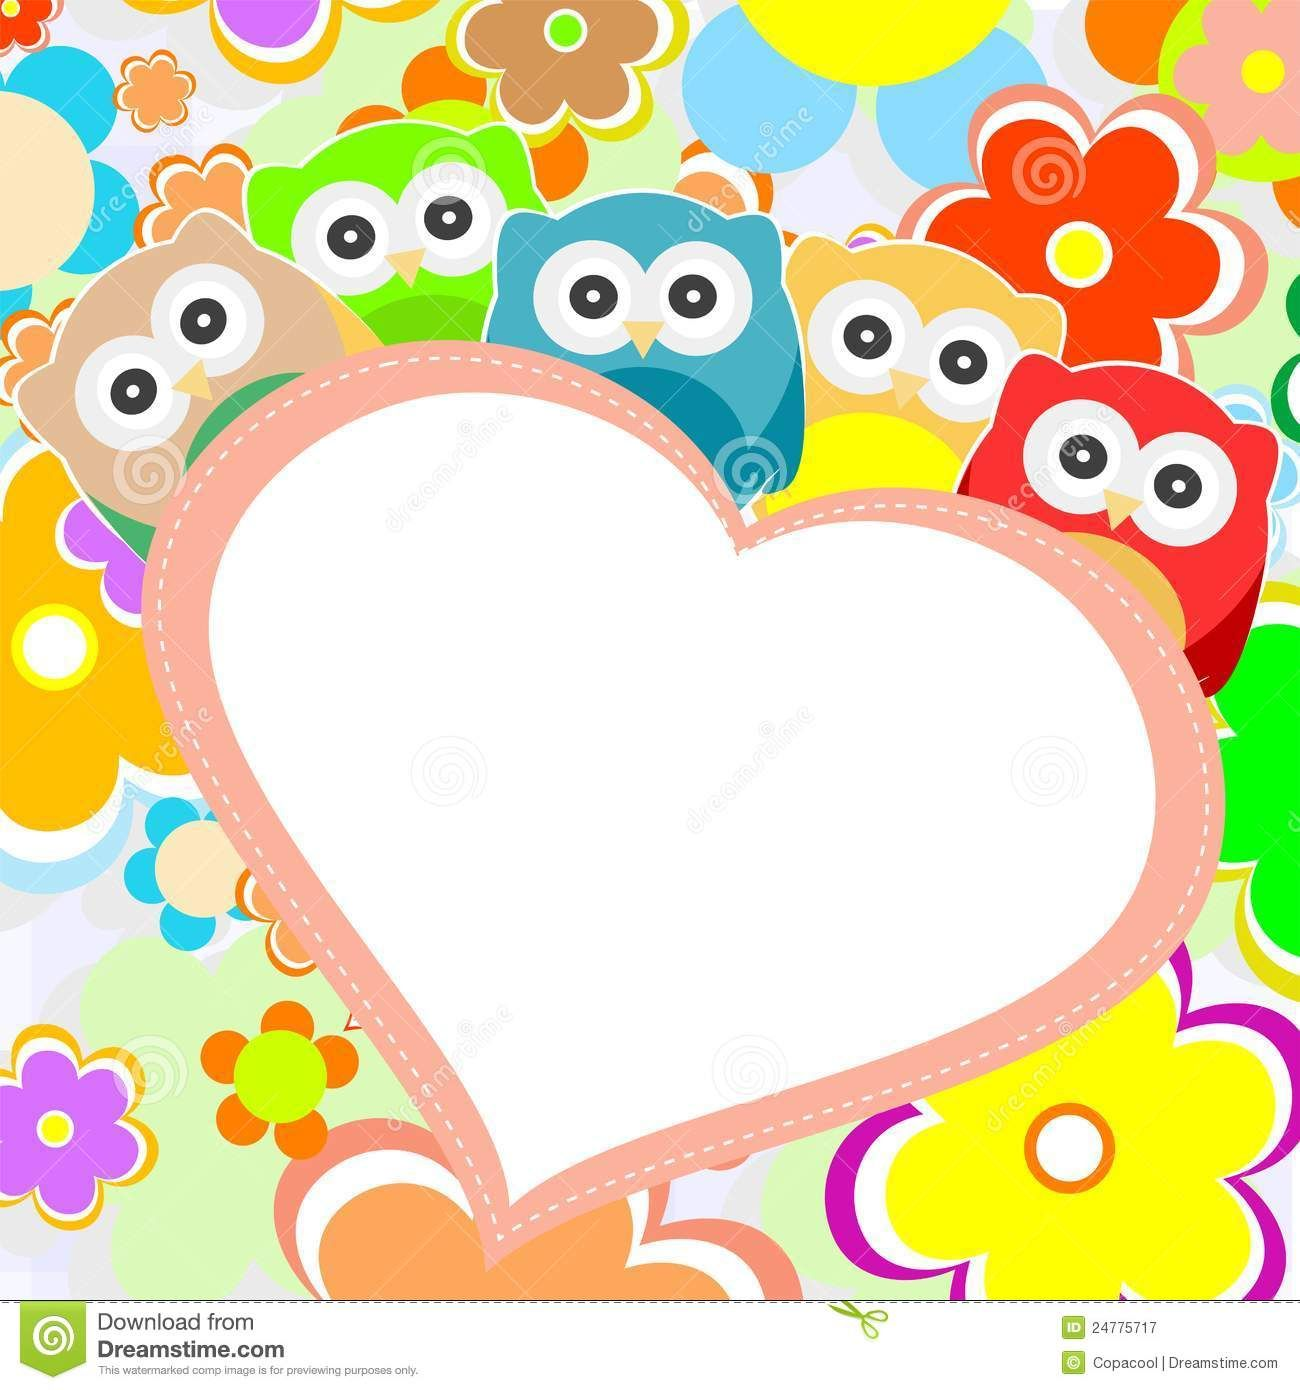 images for  valentines owl clipart  valentine love  pinterest  owl - images for  valentines owl clipart